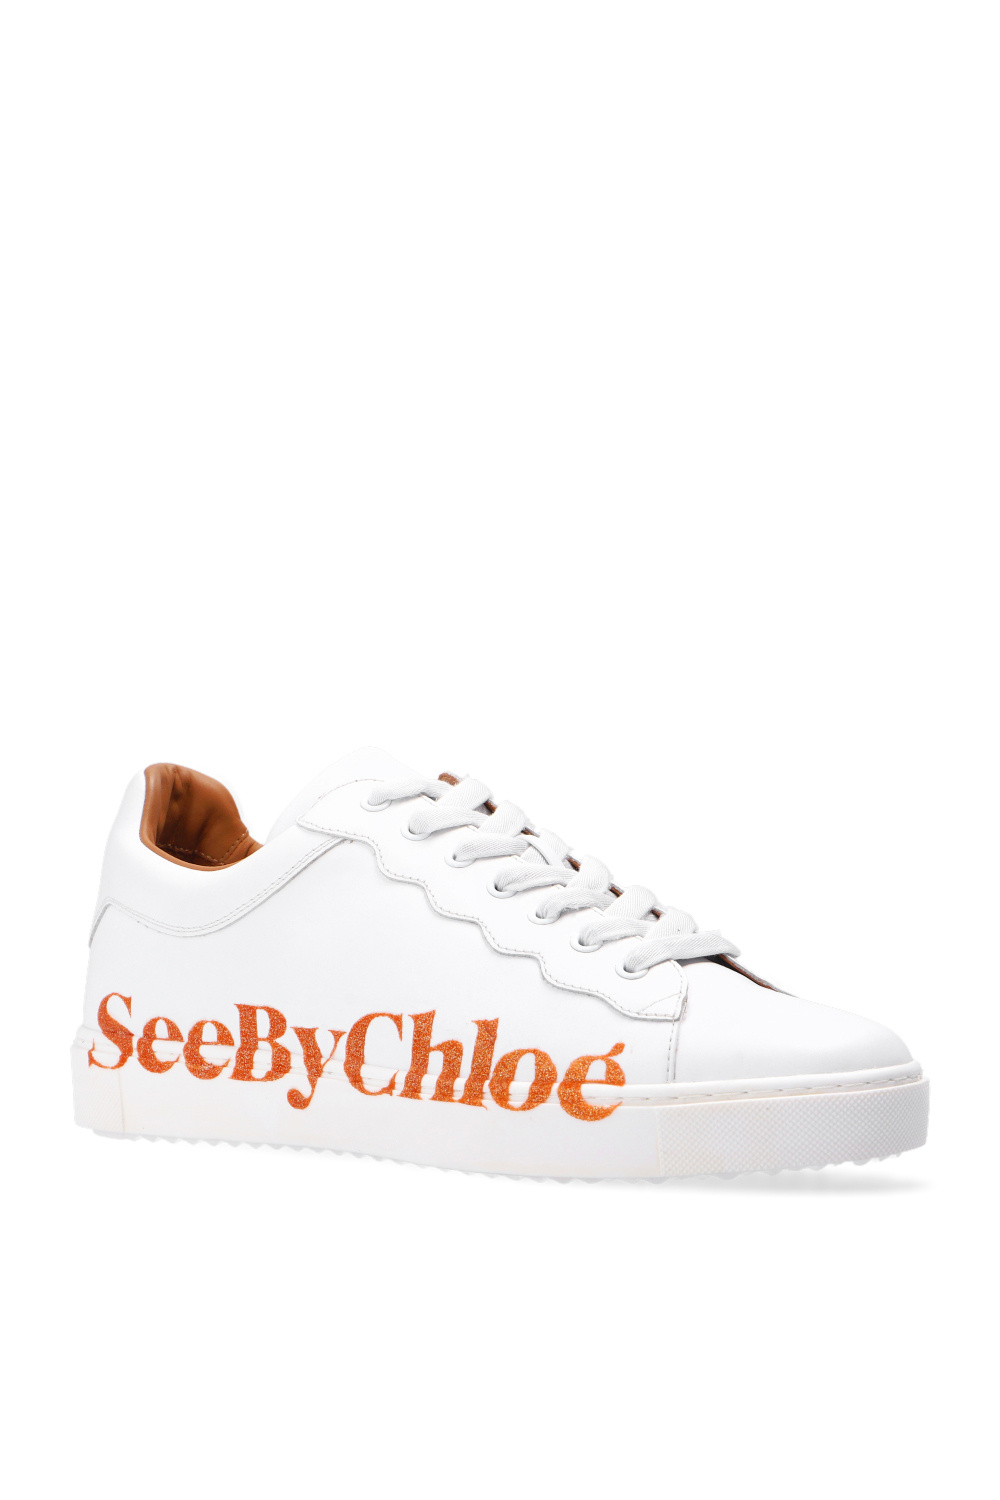 See By Chloe Lace-up shoes with logo